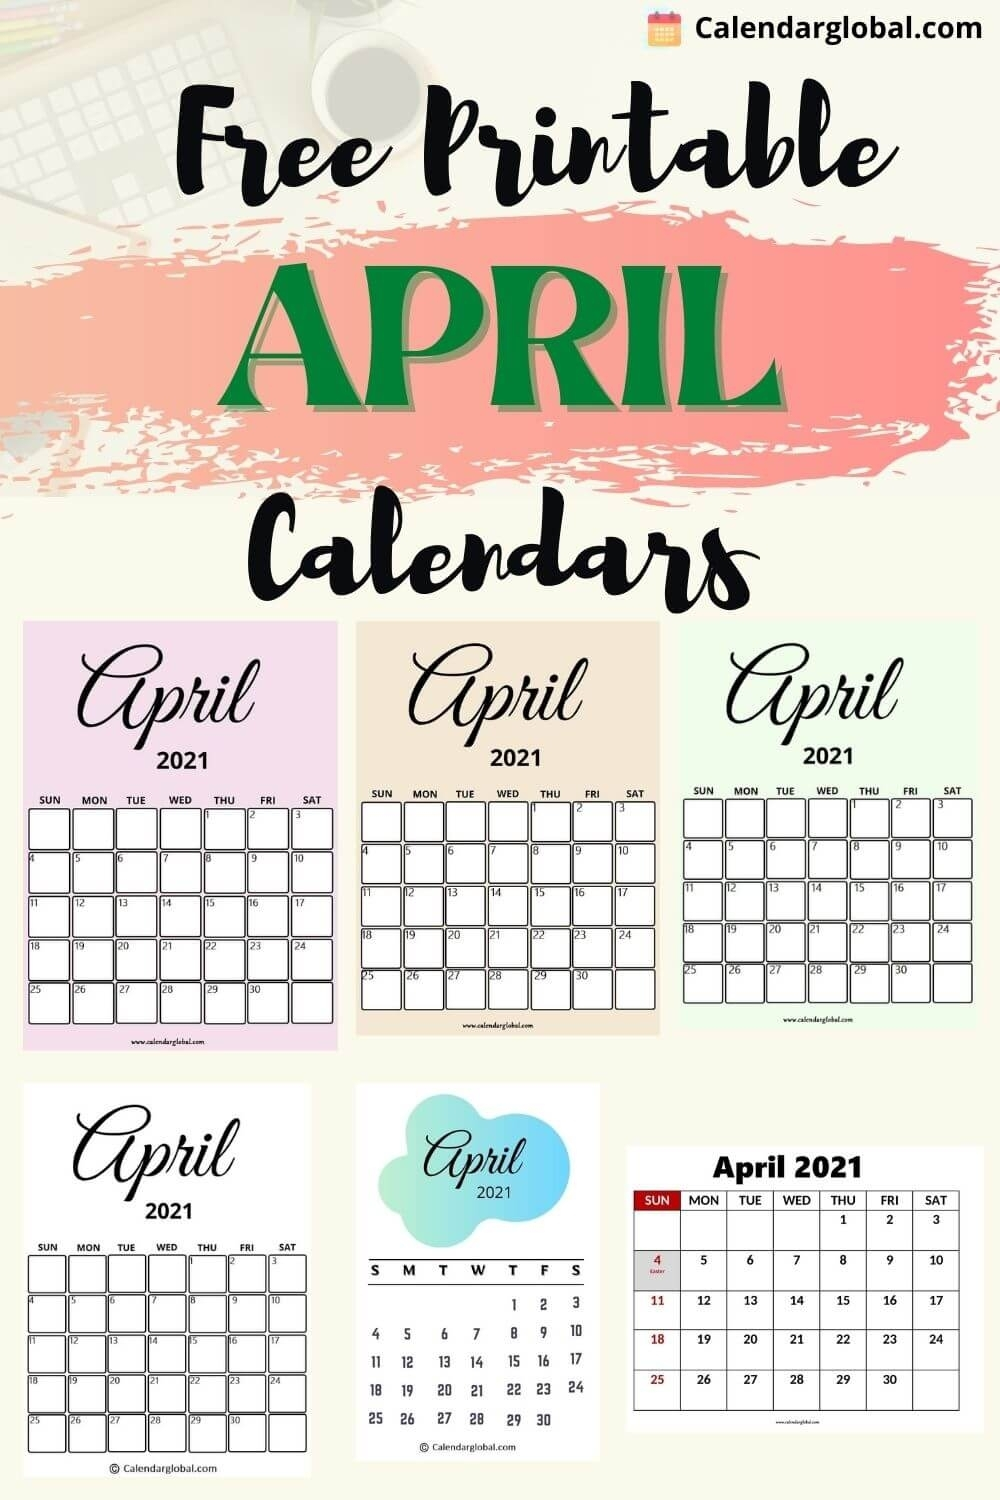 Take Special Days Of The Month 2021